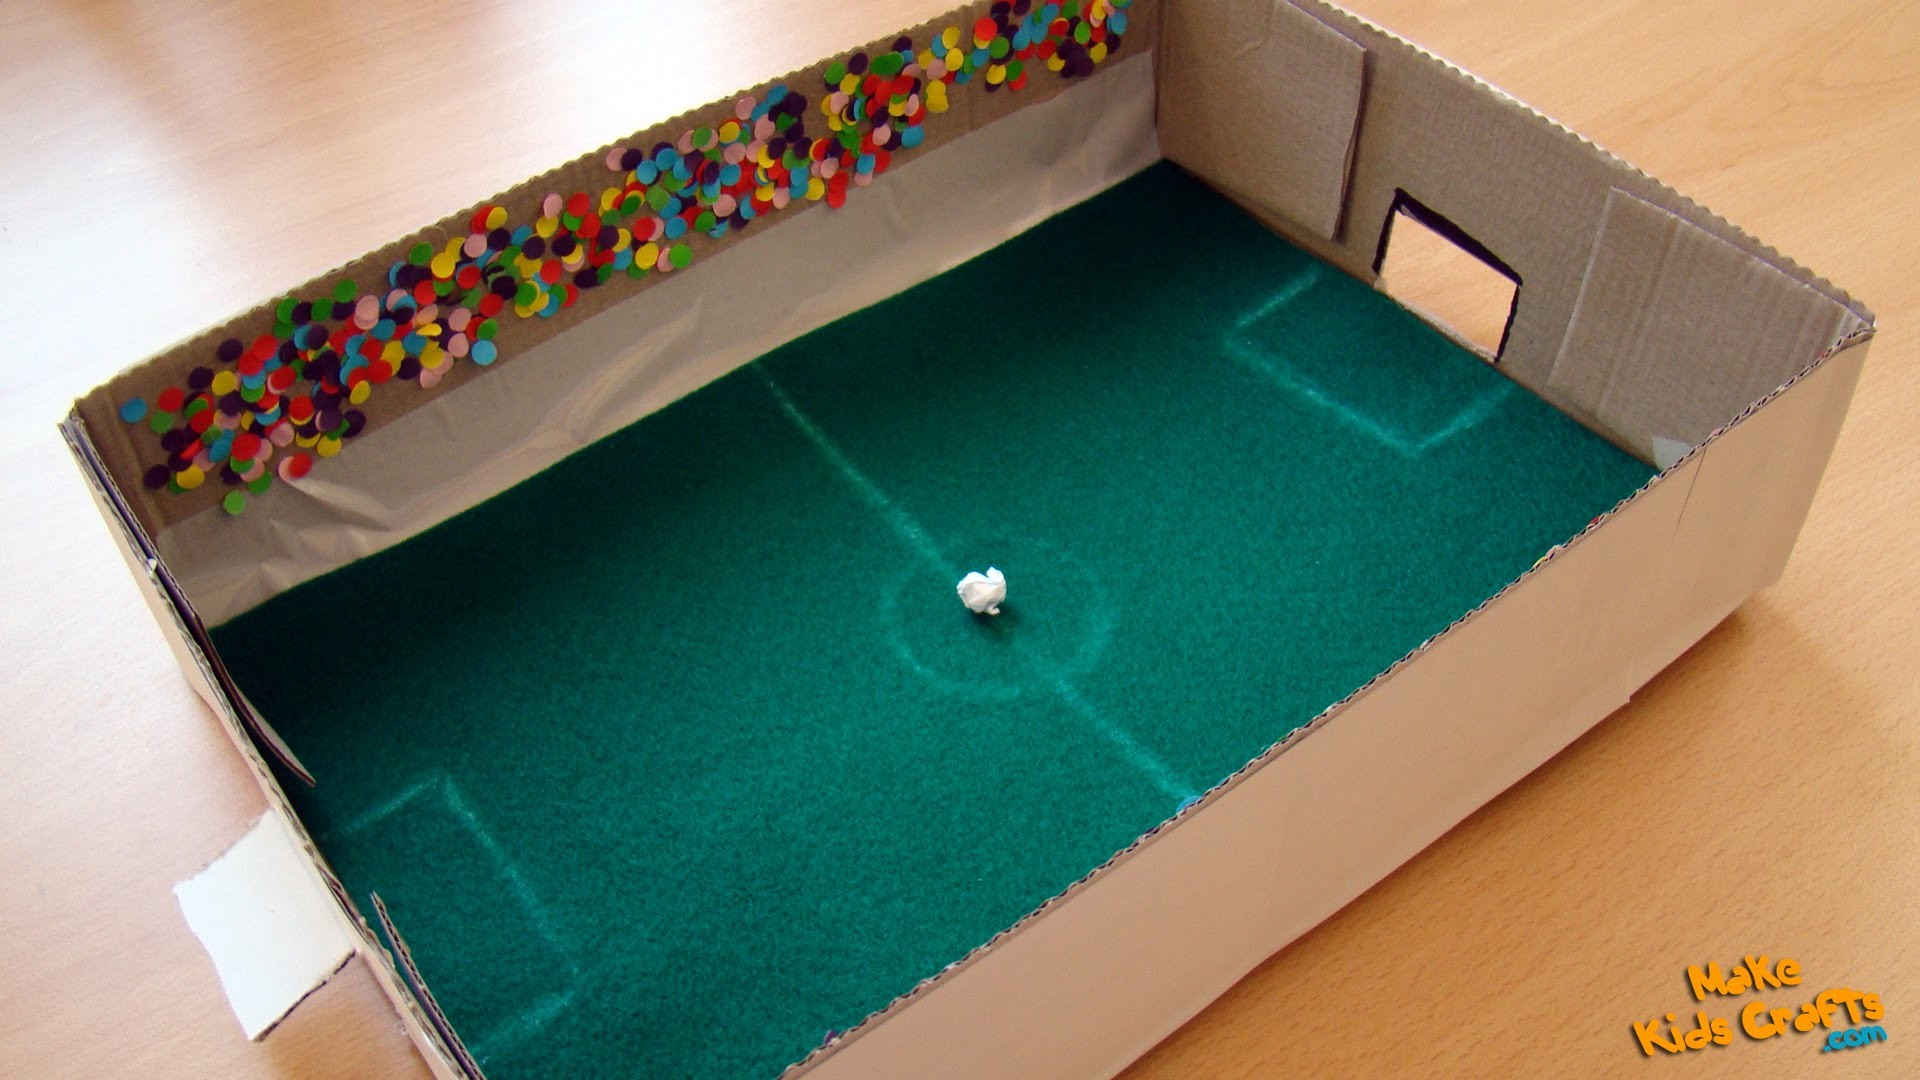 How to make a Football Game? DIY